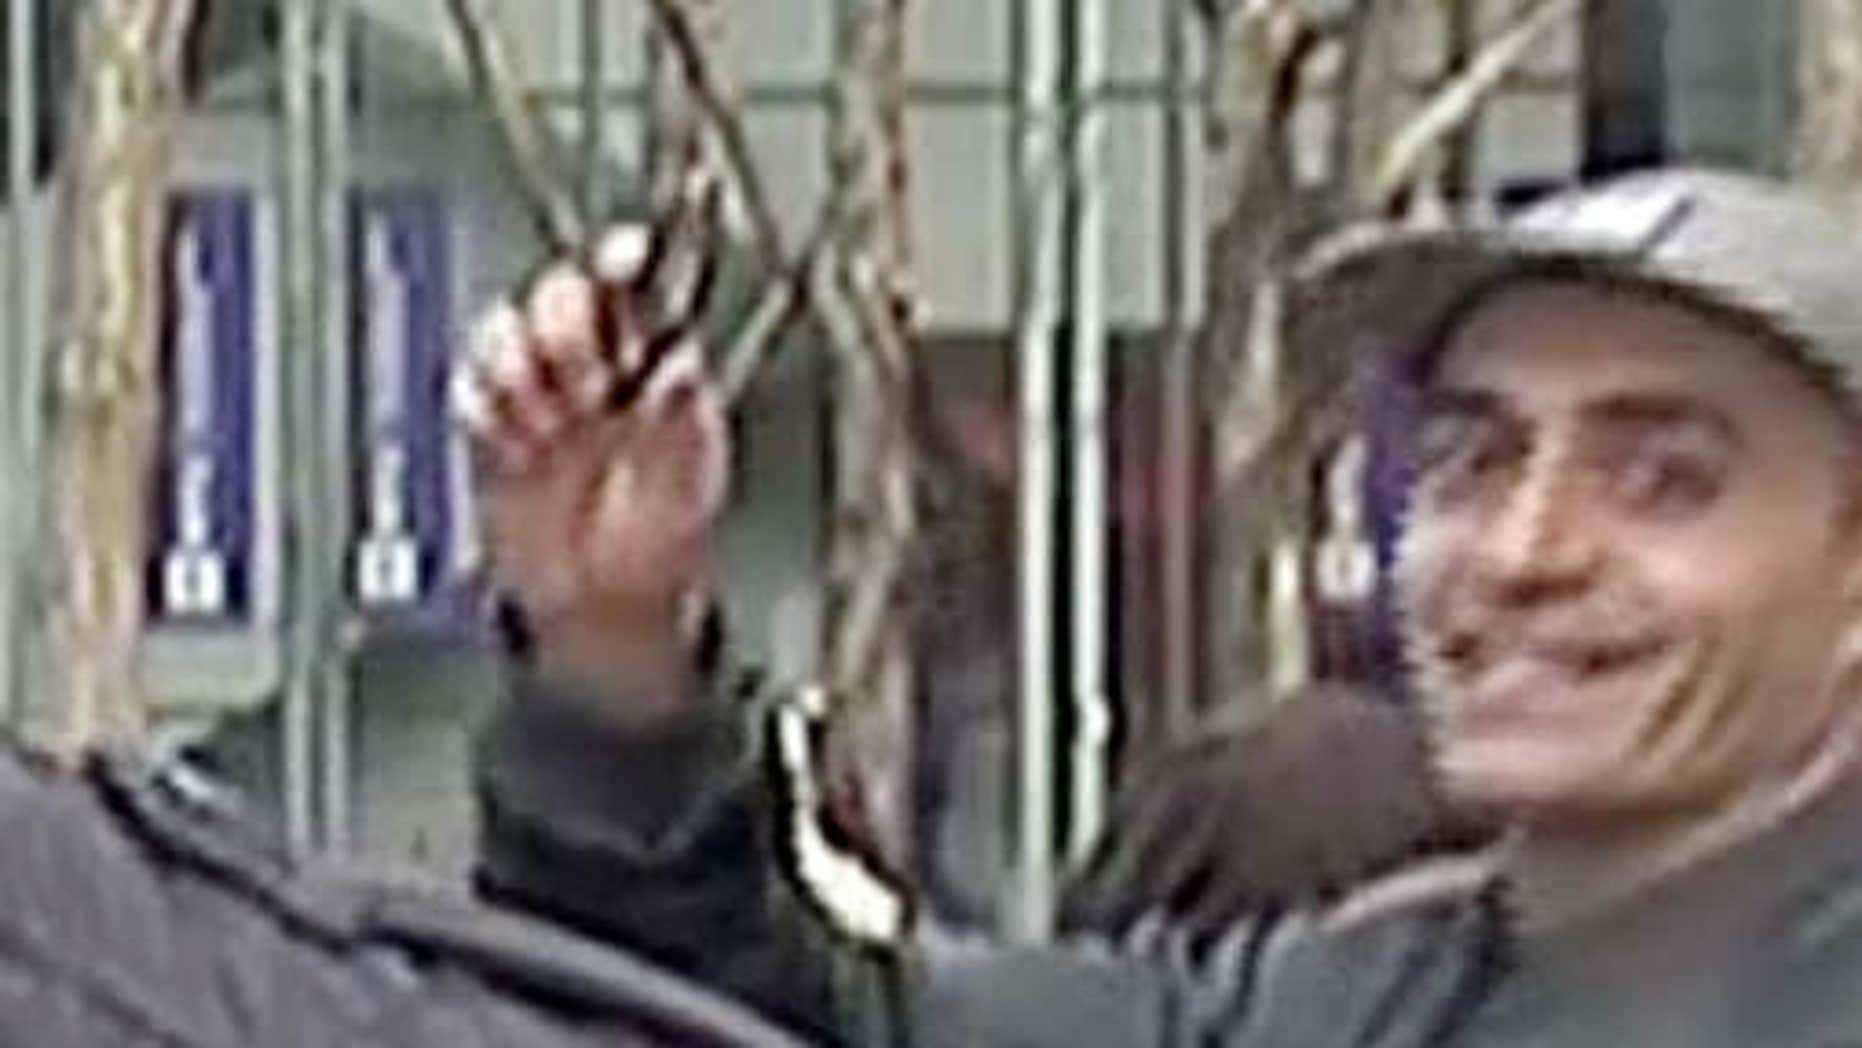 Feb. 10, 2016: In this image taken from WNBC-TV video, a man appears to wave a handgun behind a television news reporter during a live broadcast in New York City